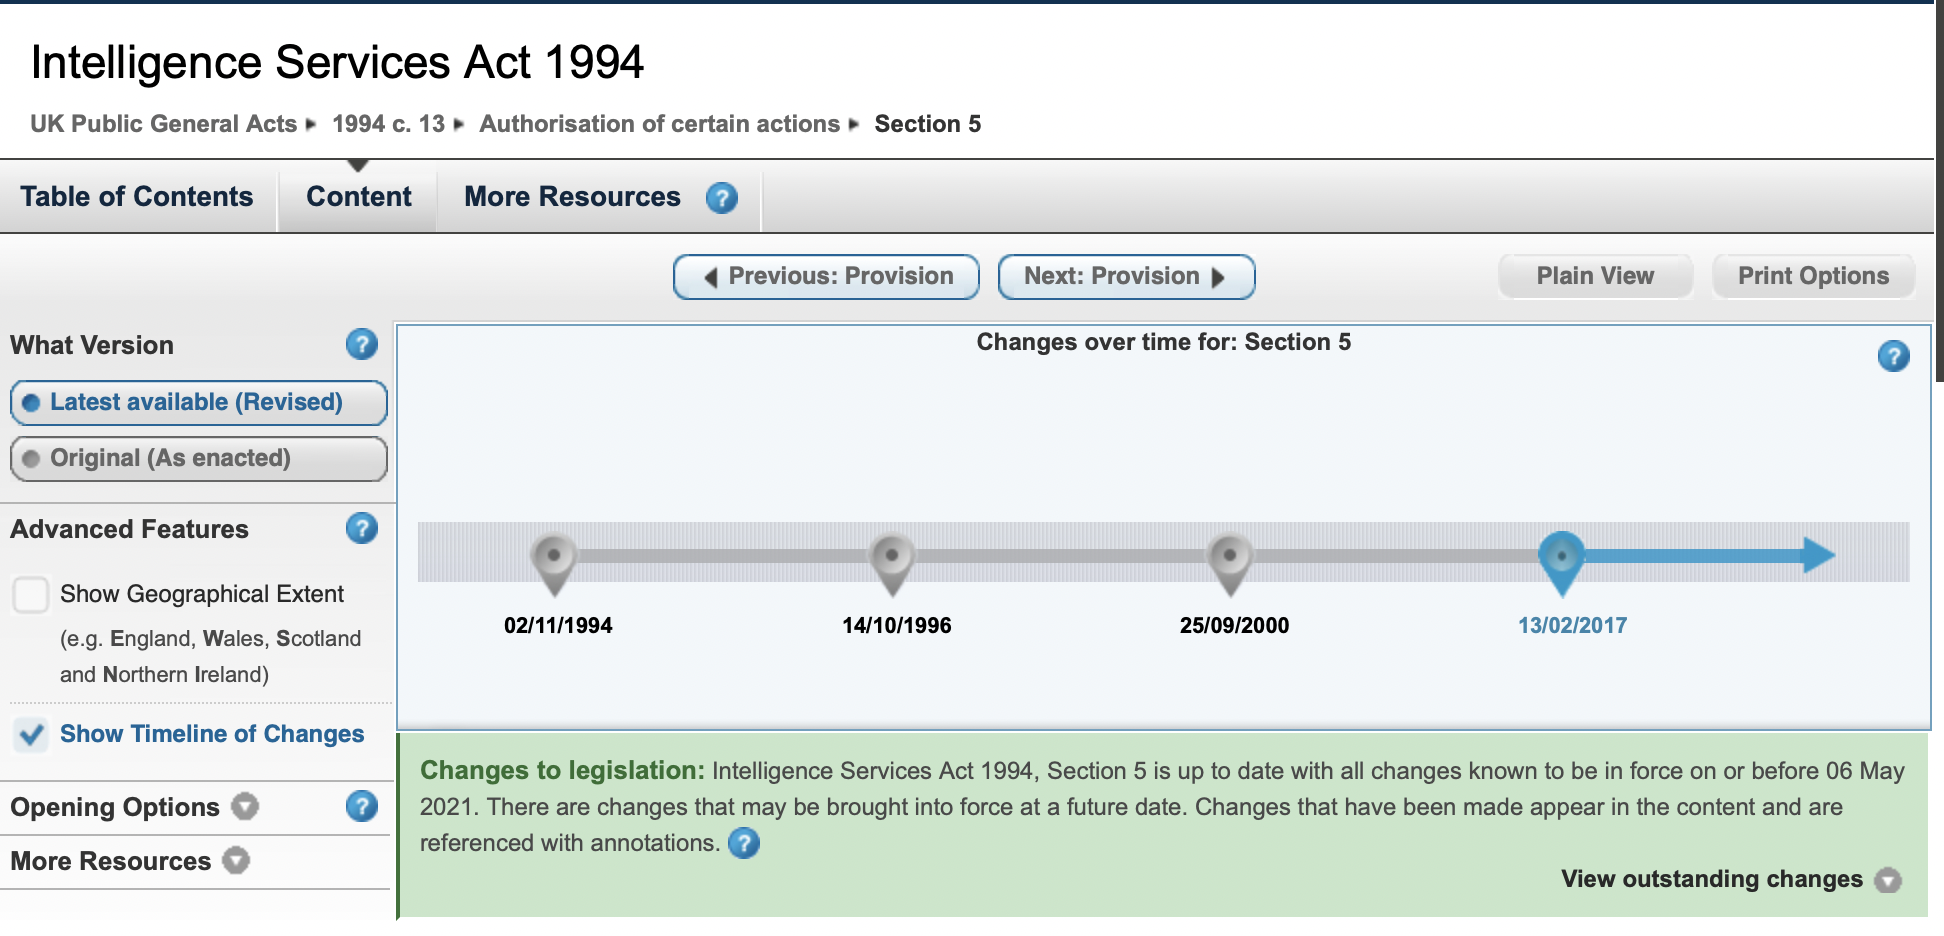 IS act 1994. how does it effect the eu and DATA